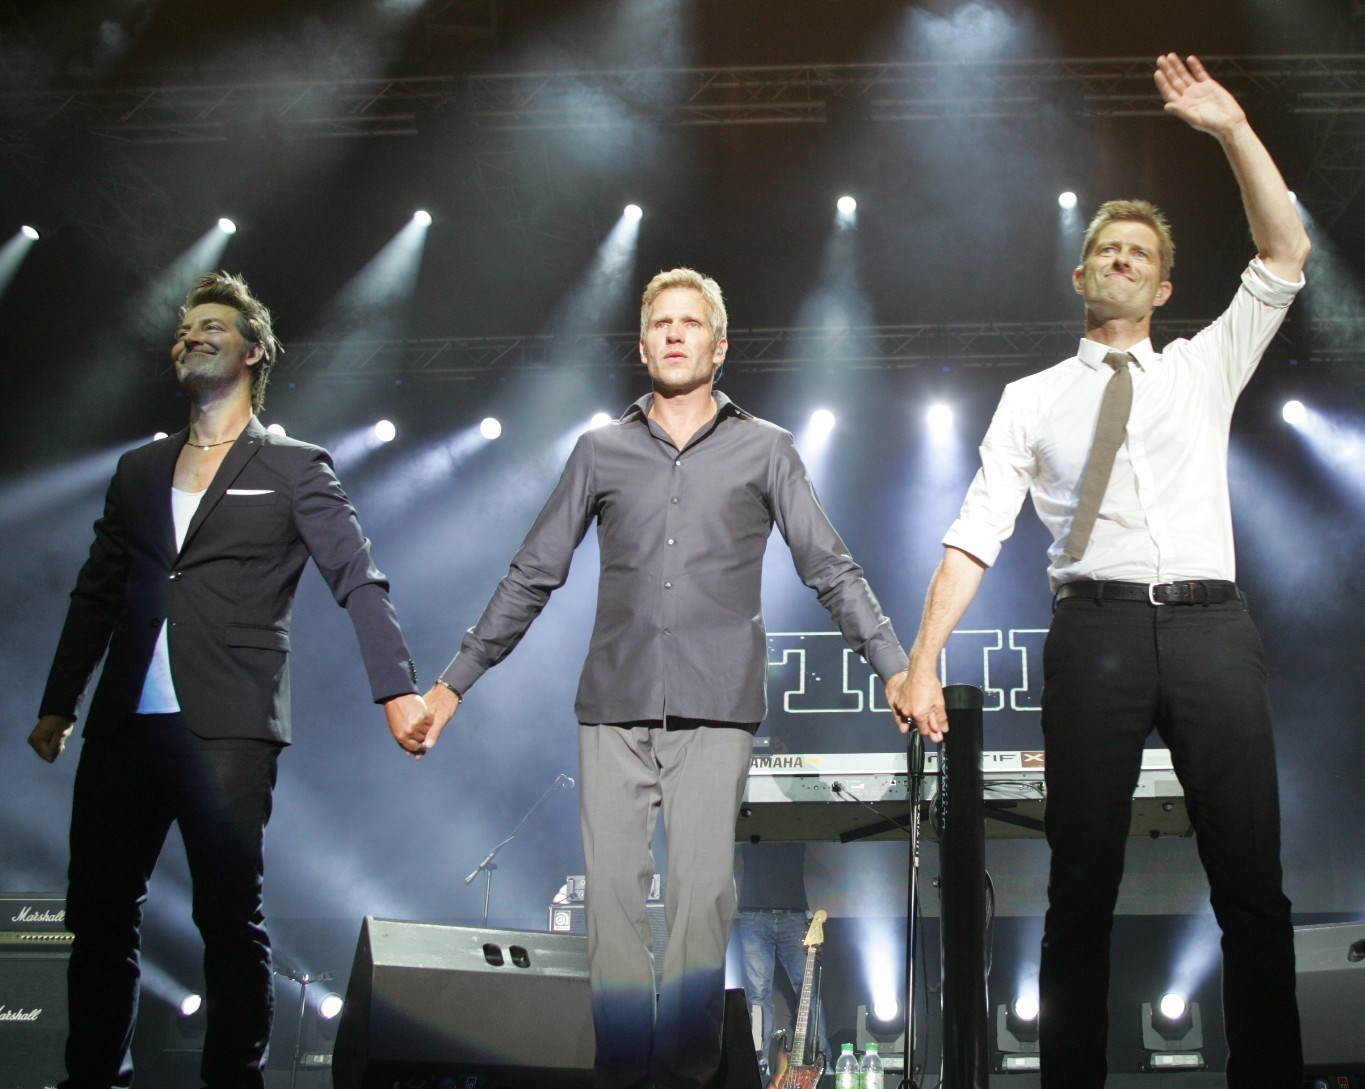 Gig review: Michael Learns To Rock '25 Live' in KL